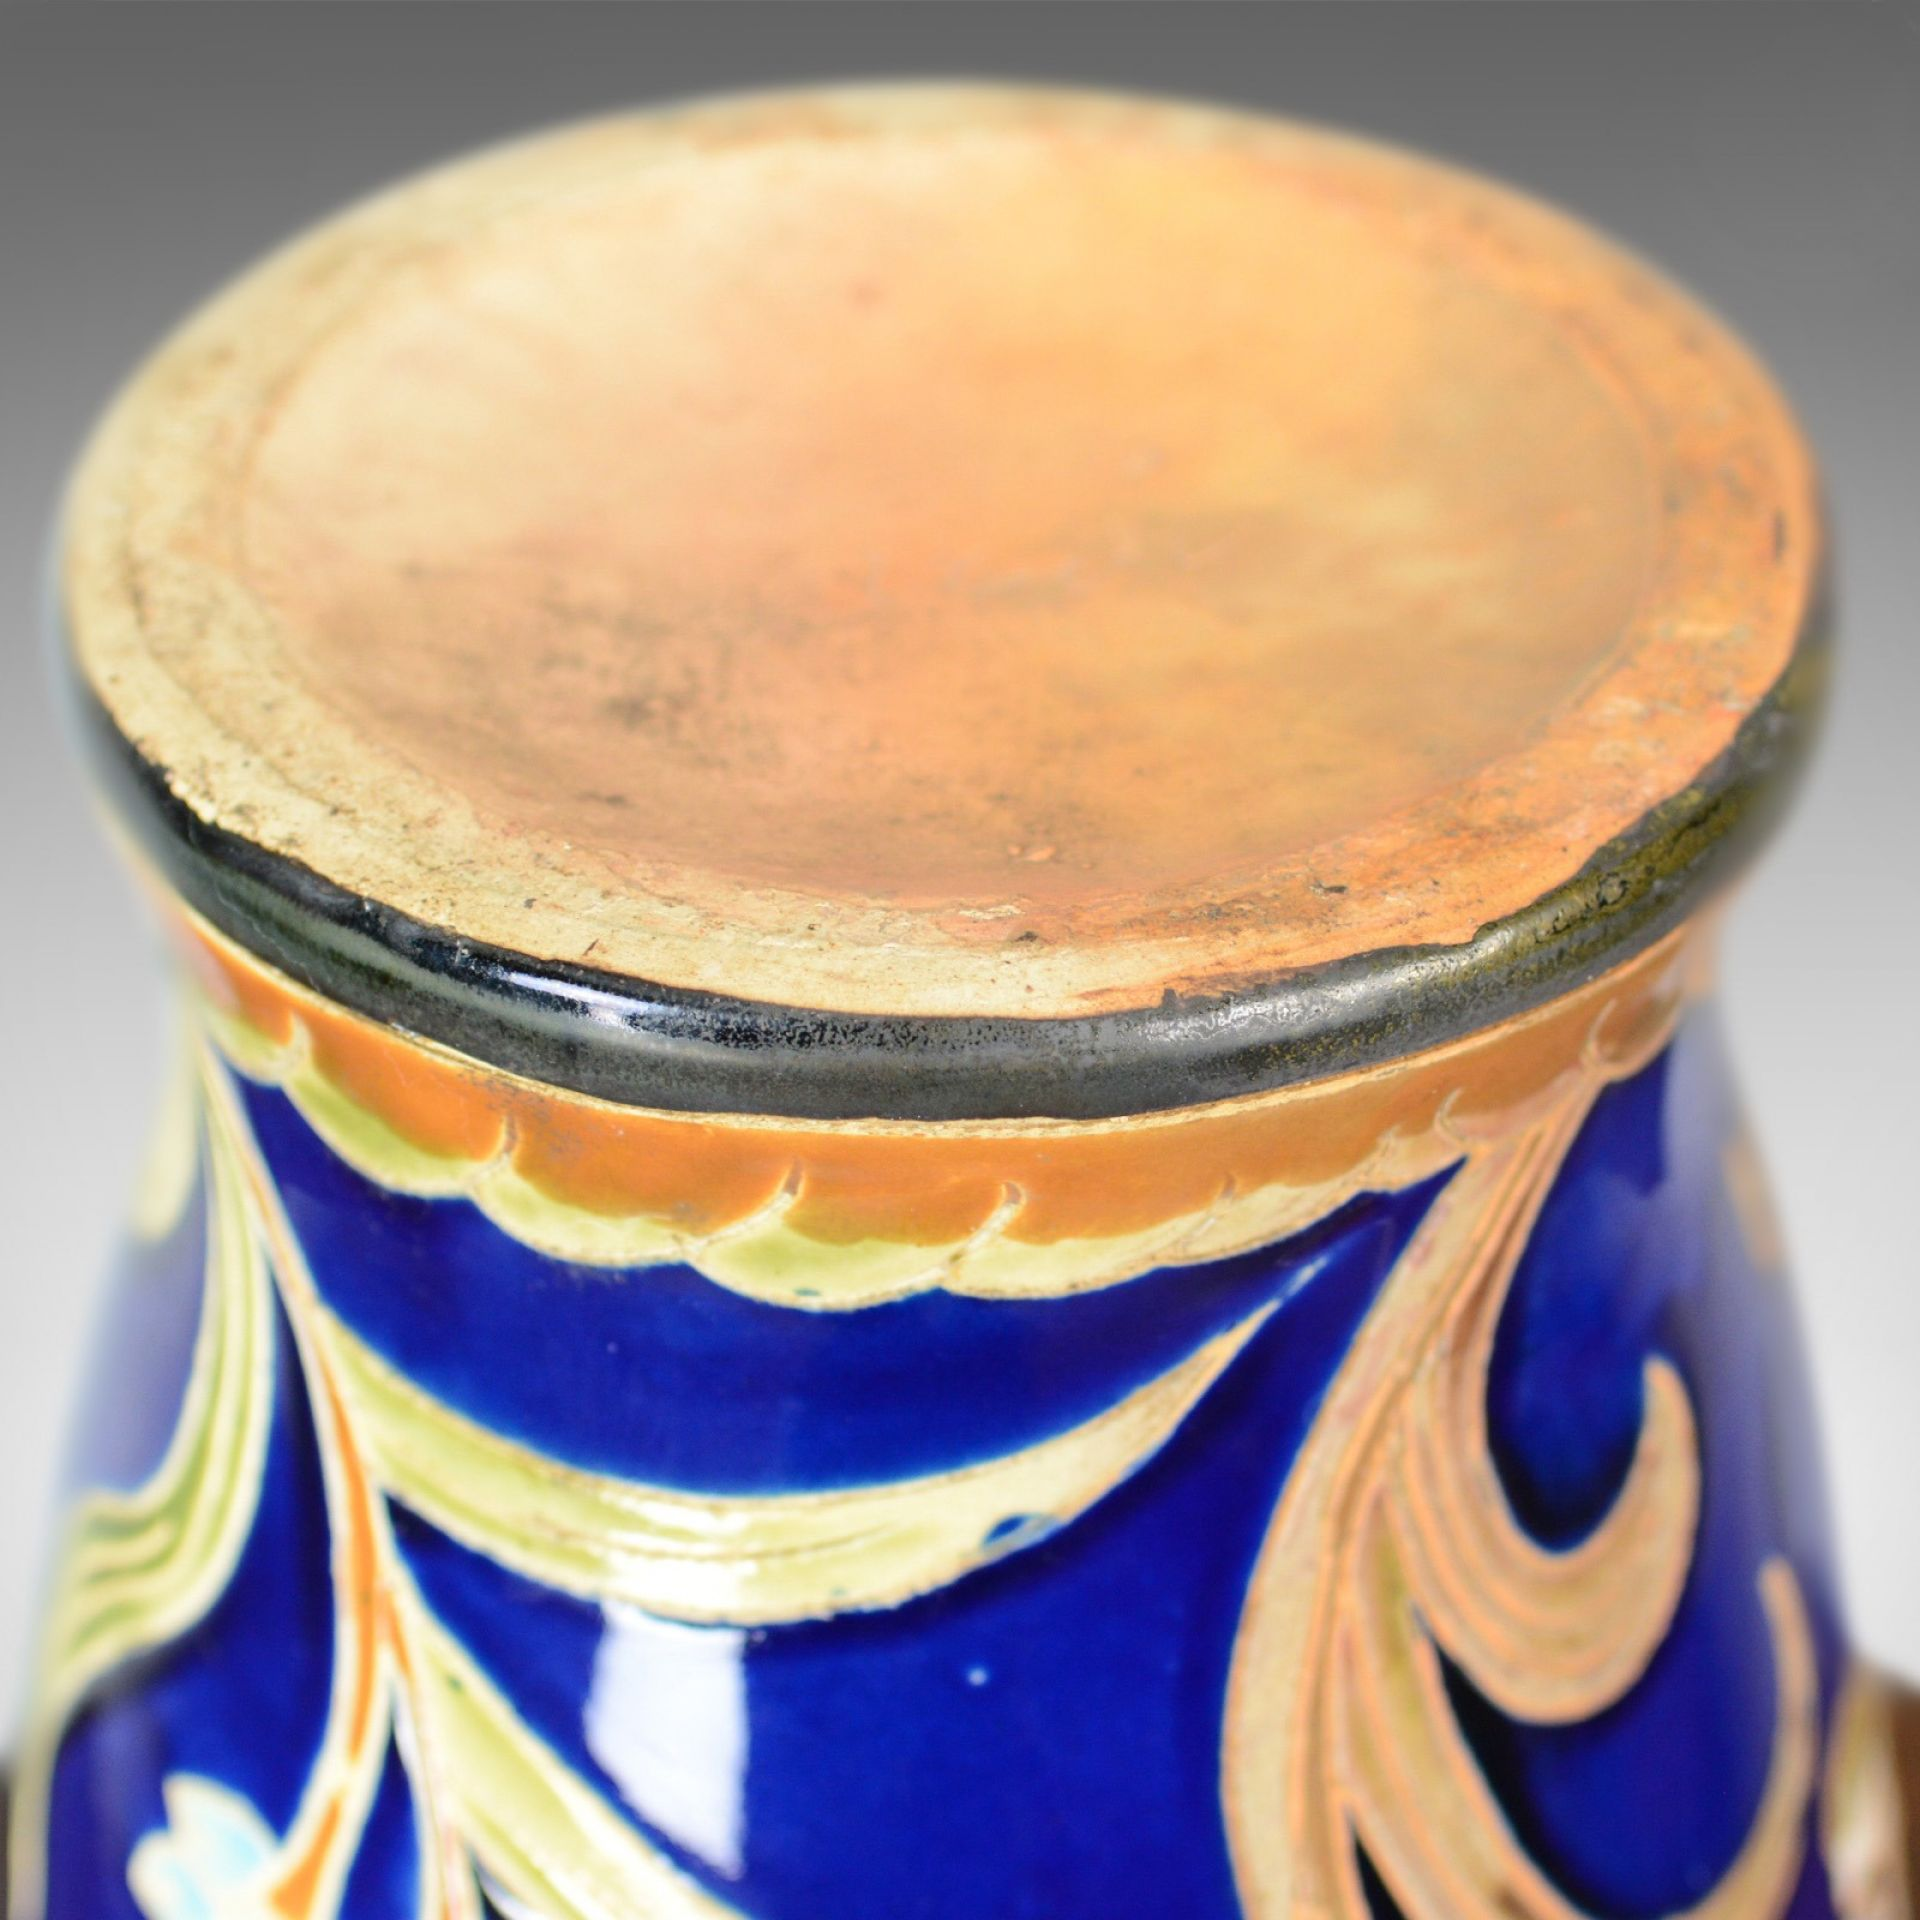 Large Baluster Vase, Floral, Ceramic, Royal Blue Ground, Late 20th Century